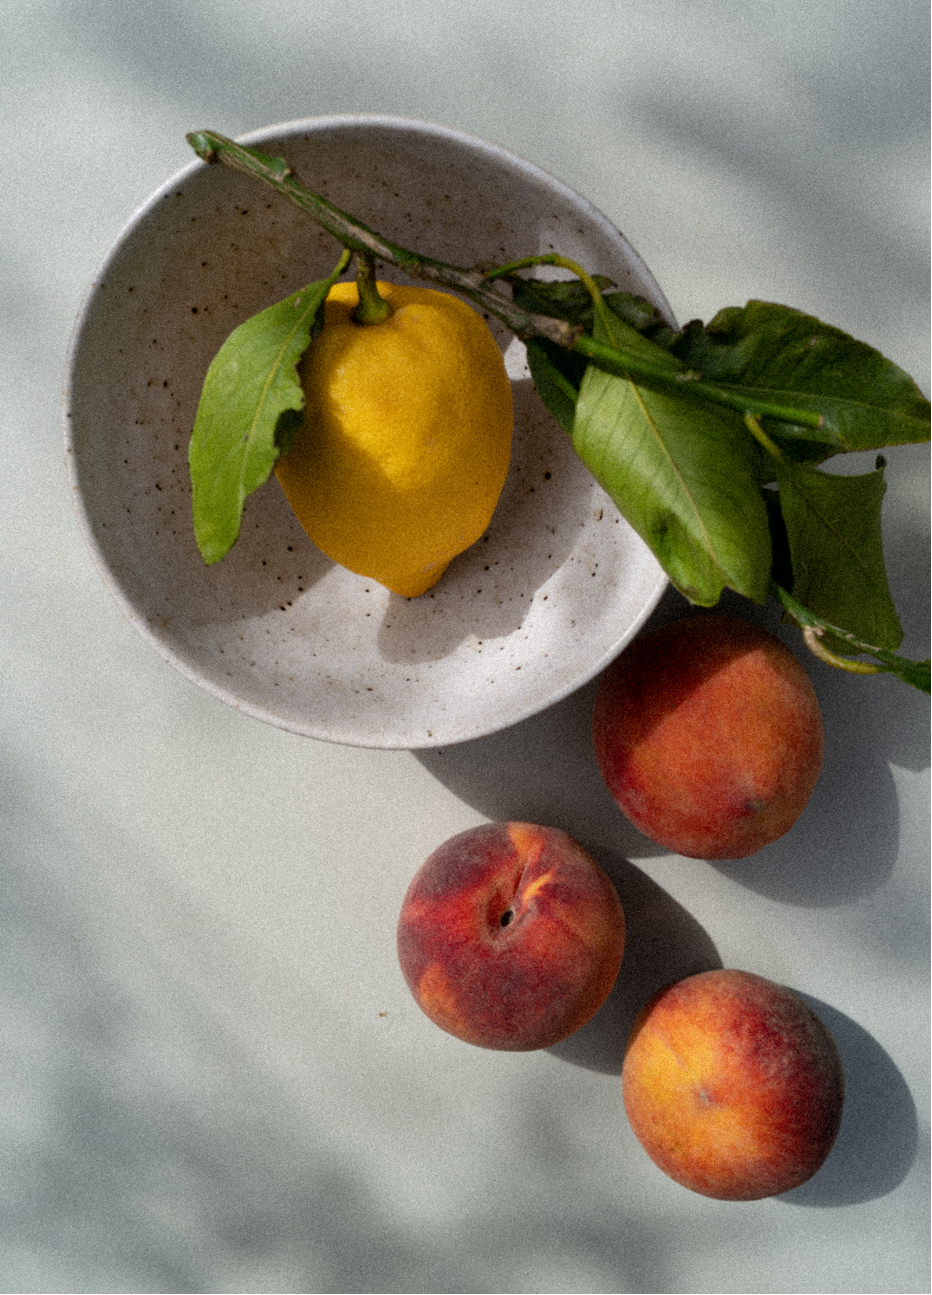 Photograph of a lemon branch in a bowl surrounded by peaches, captured by photographer Charlotte Bland.